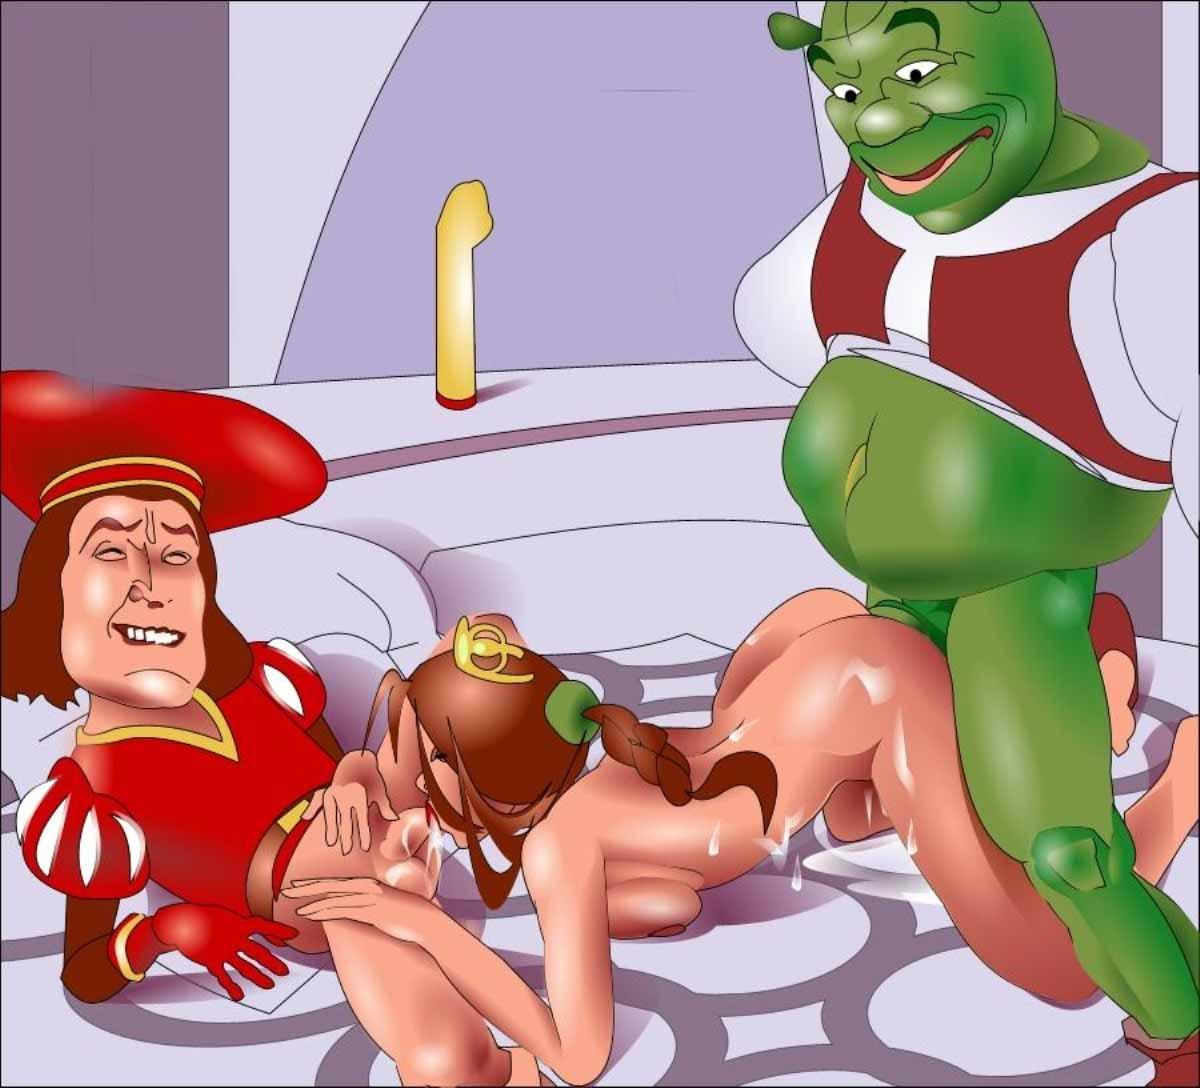 Shrek naked big boobs cartoon softcore tube